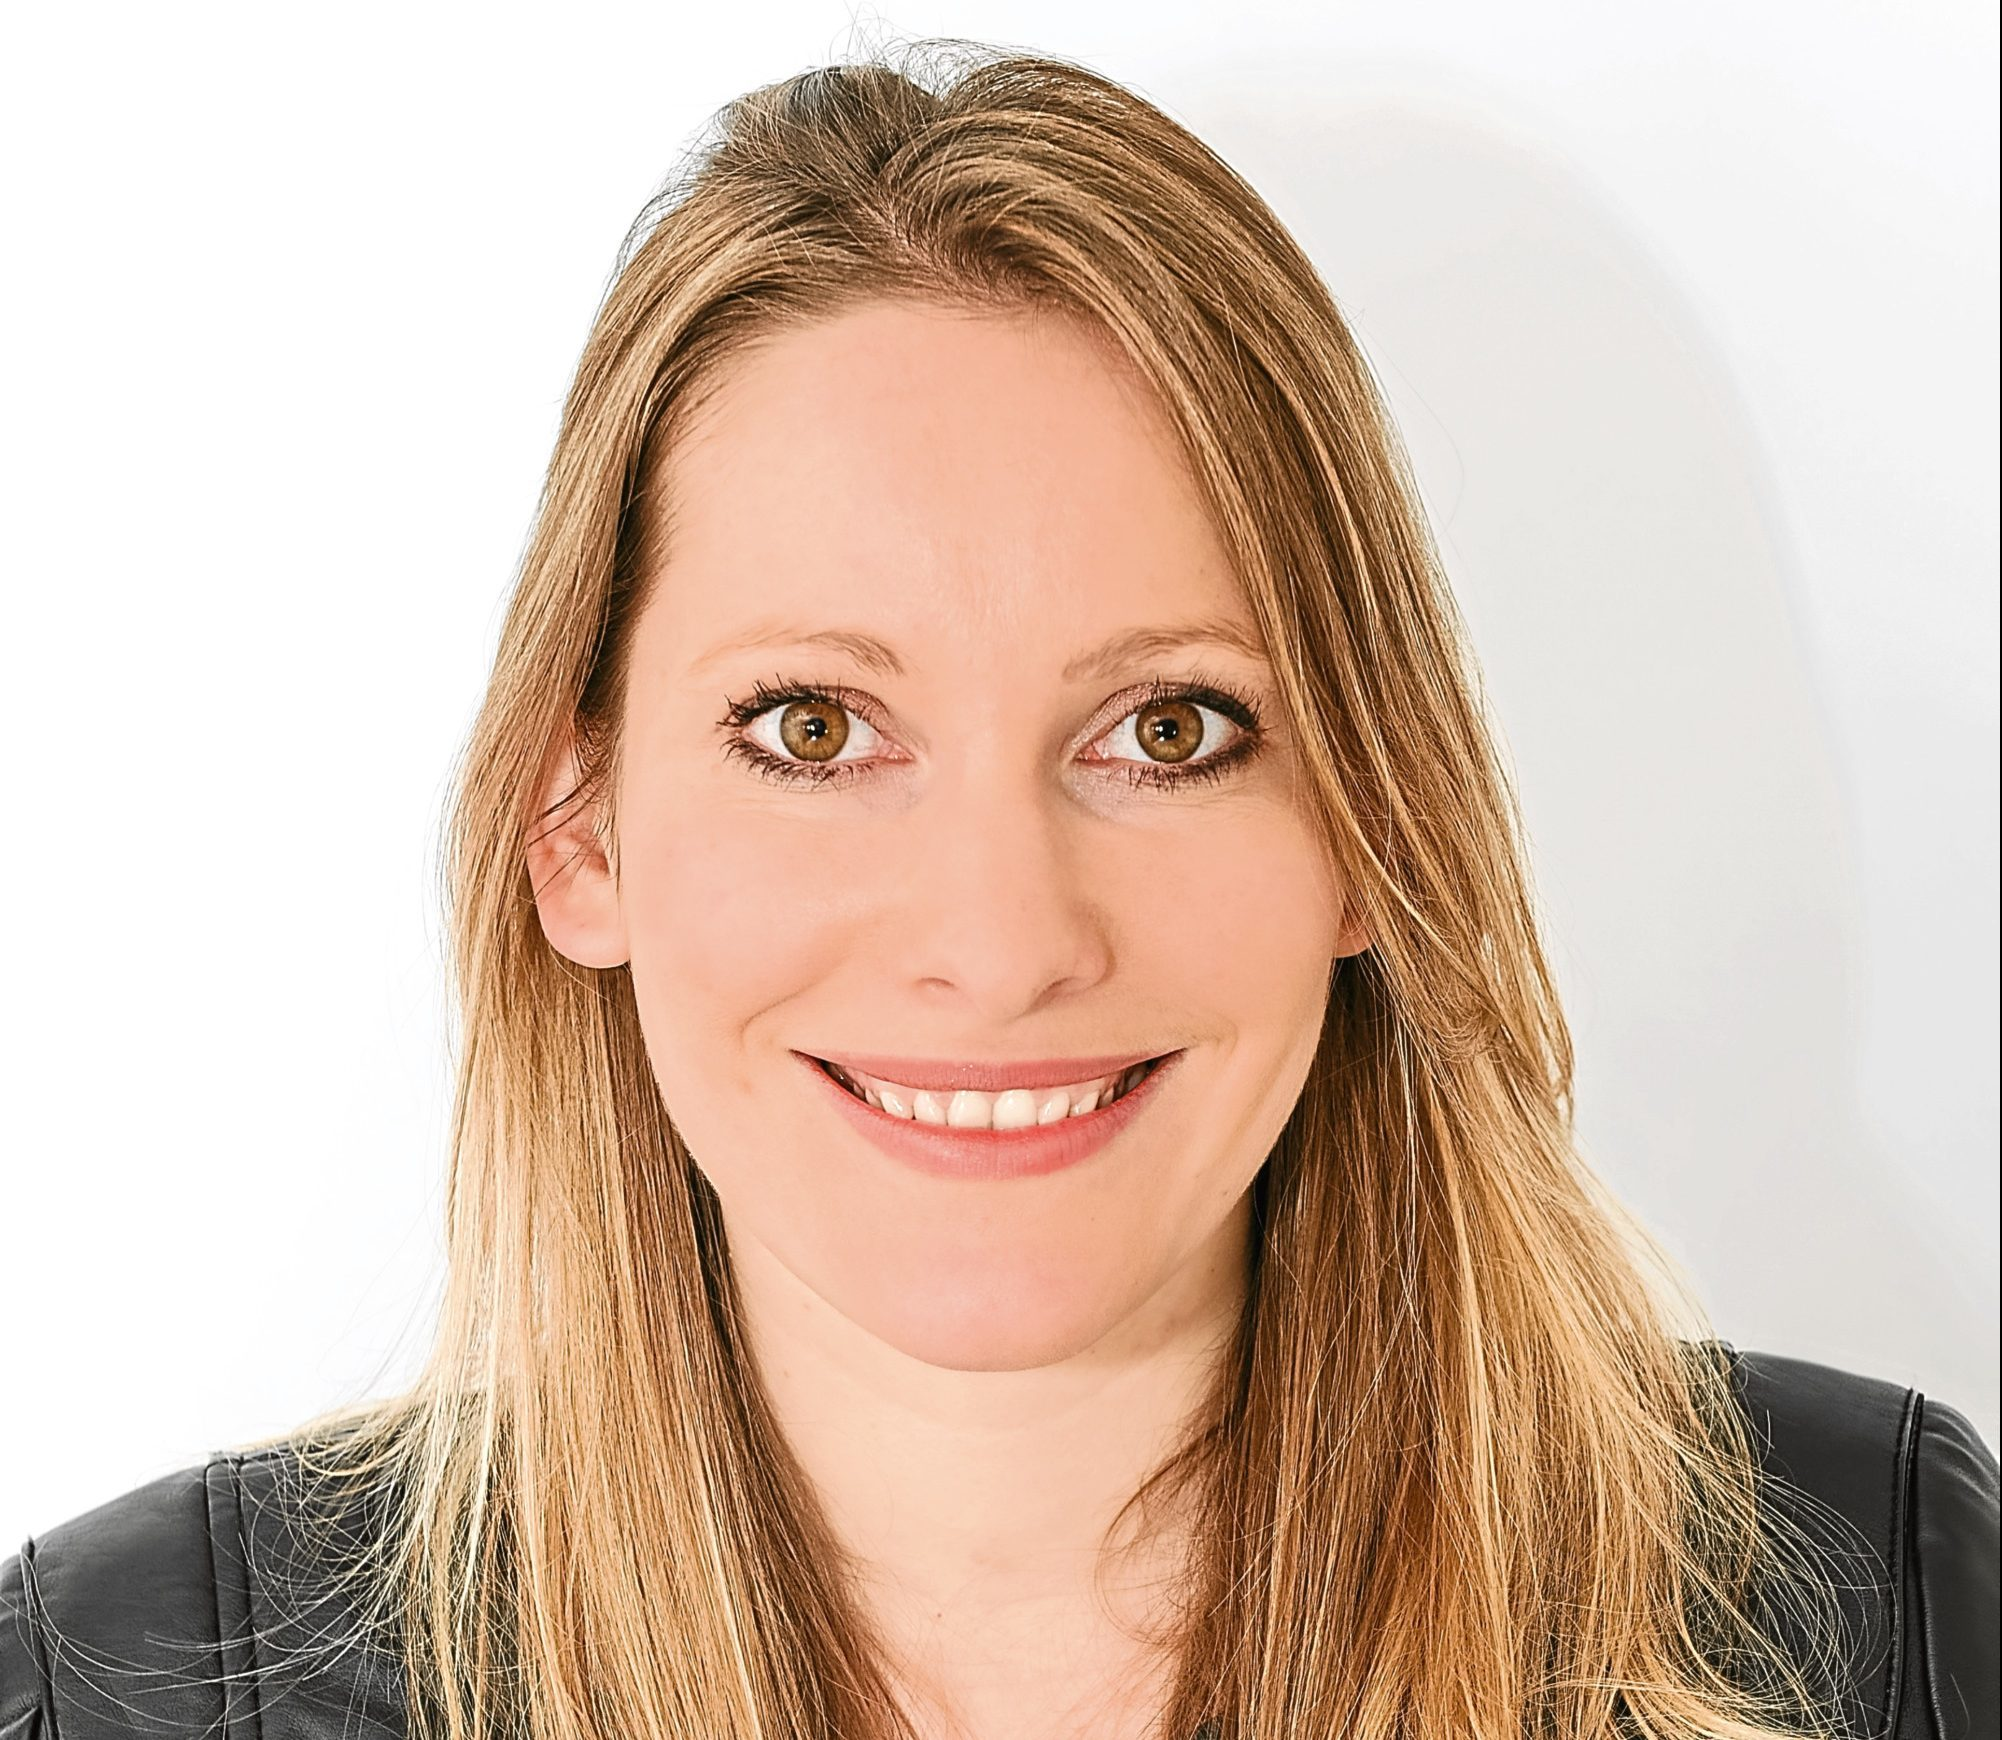 Laura Bates, founder of Everday Sexism Project